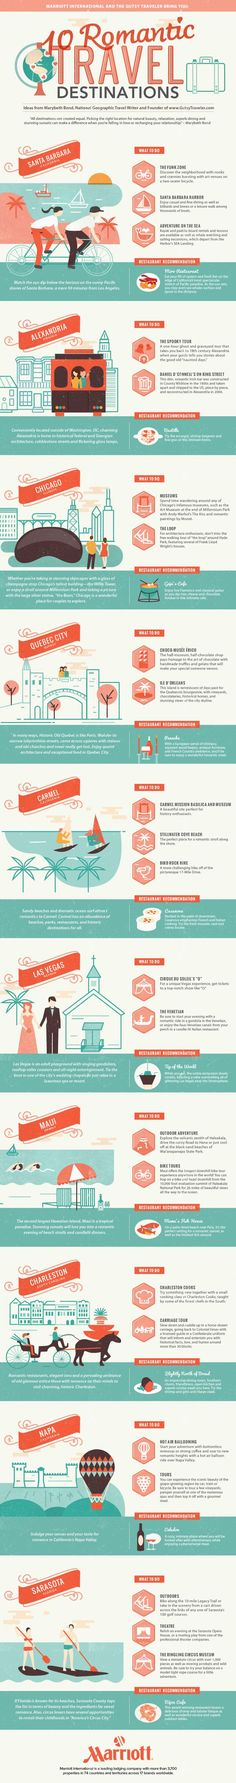 Sarasota made the list! Ten Romantic Travel Destinations #Infographic #infografía